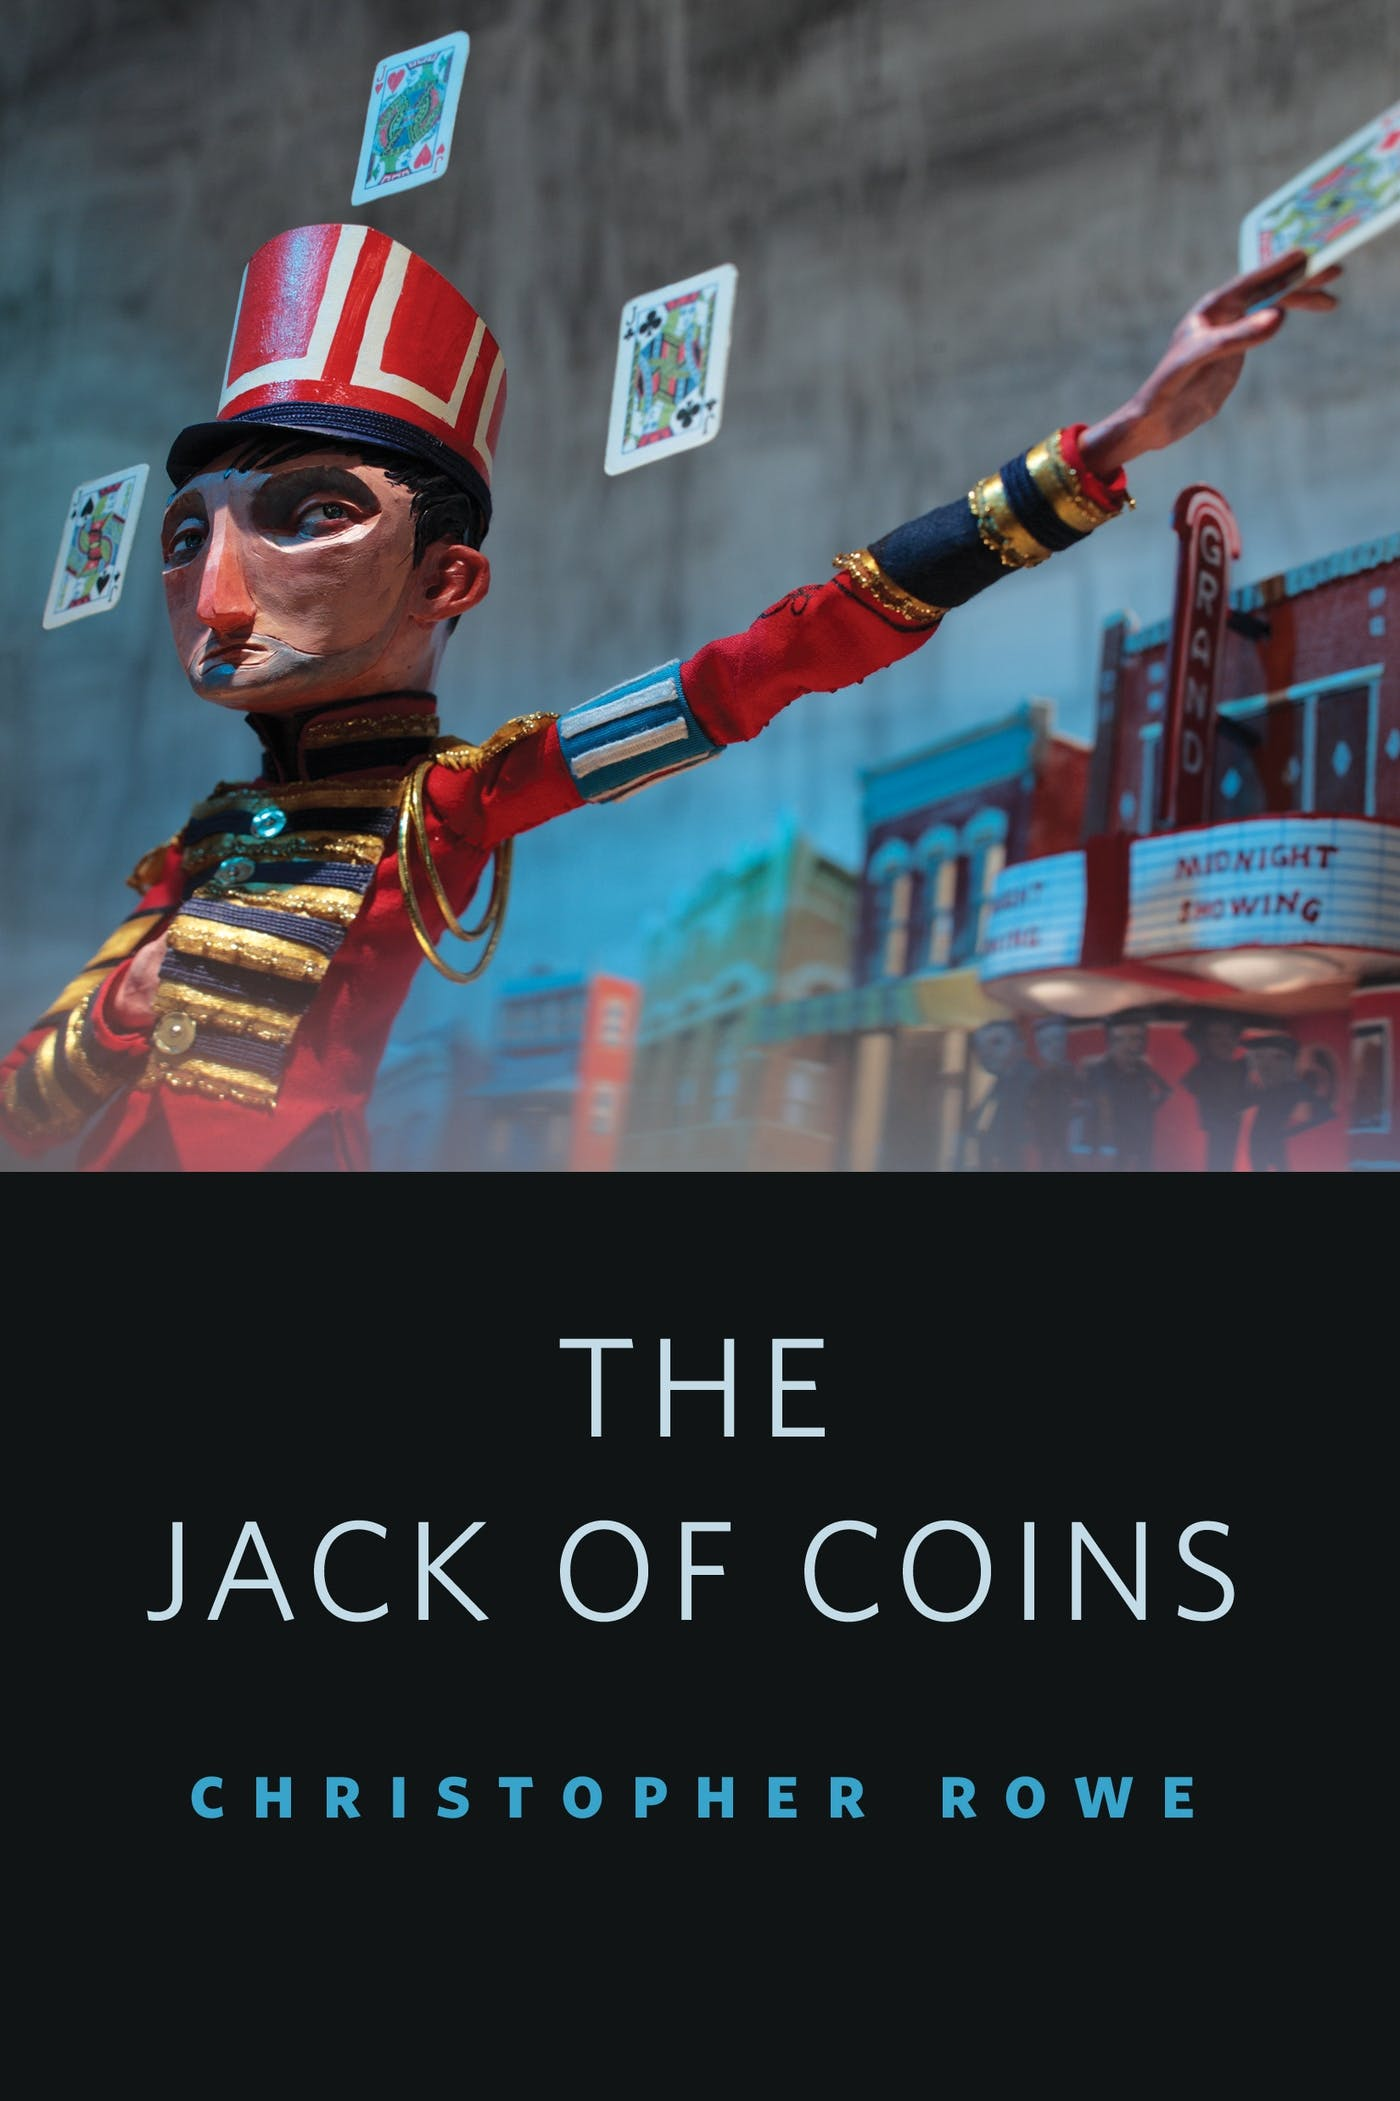 Image of Jack of Coins